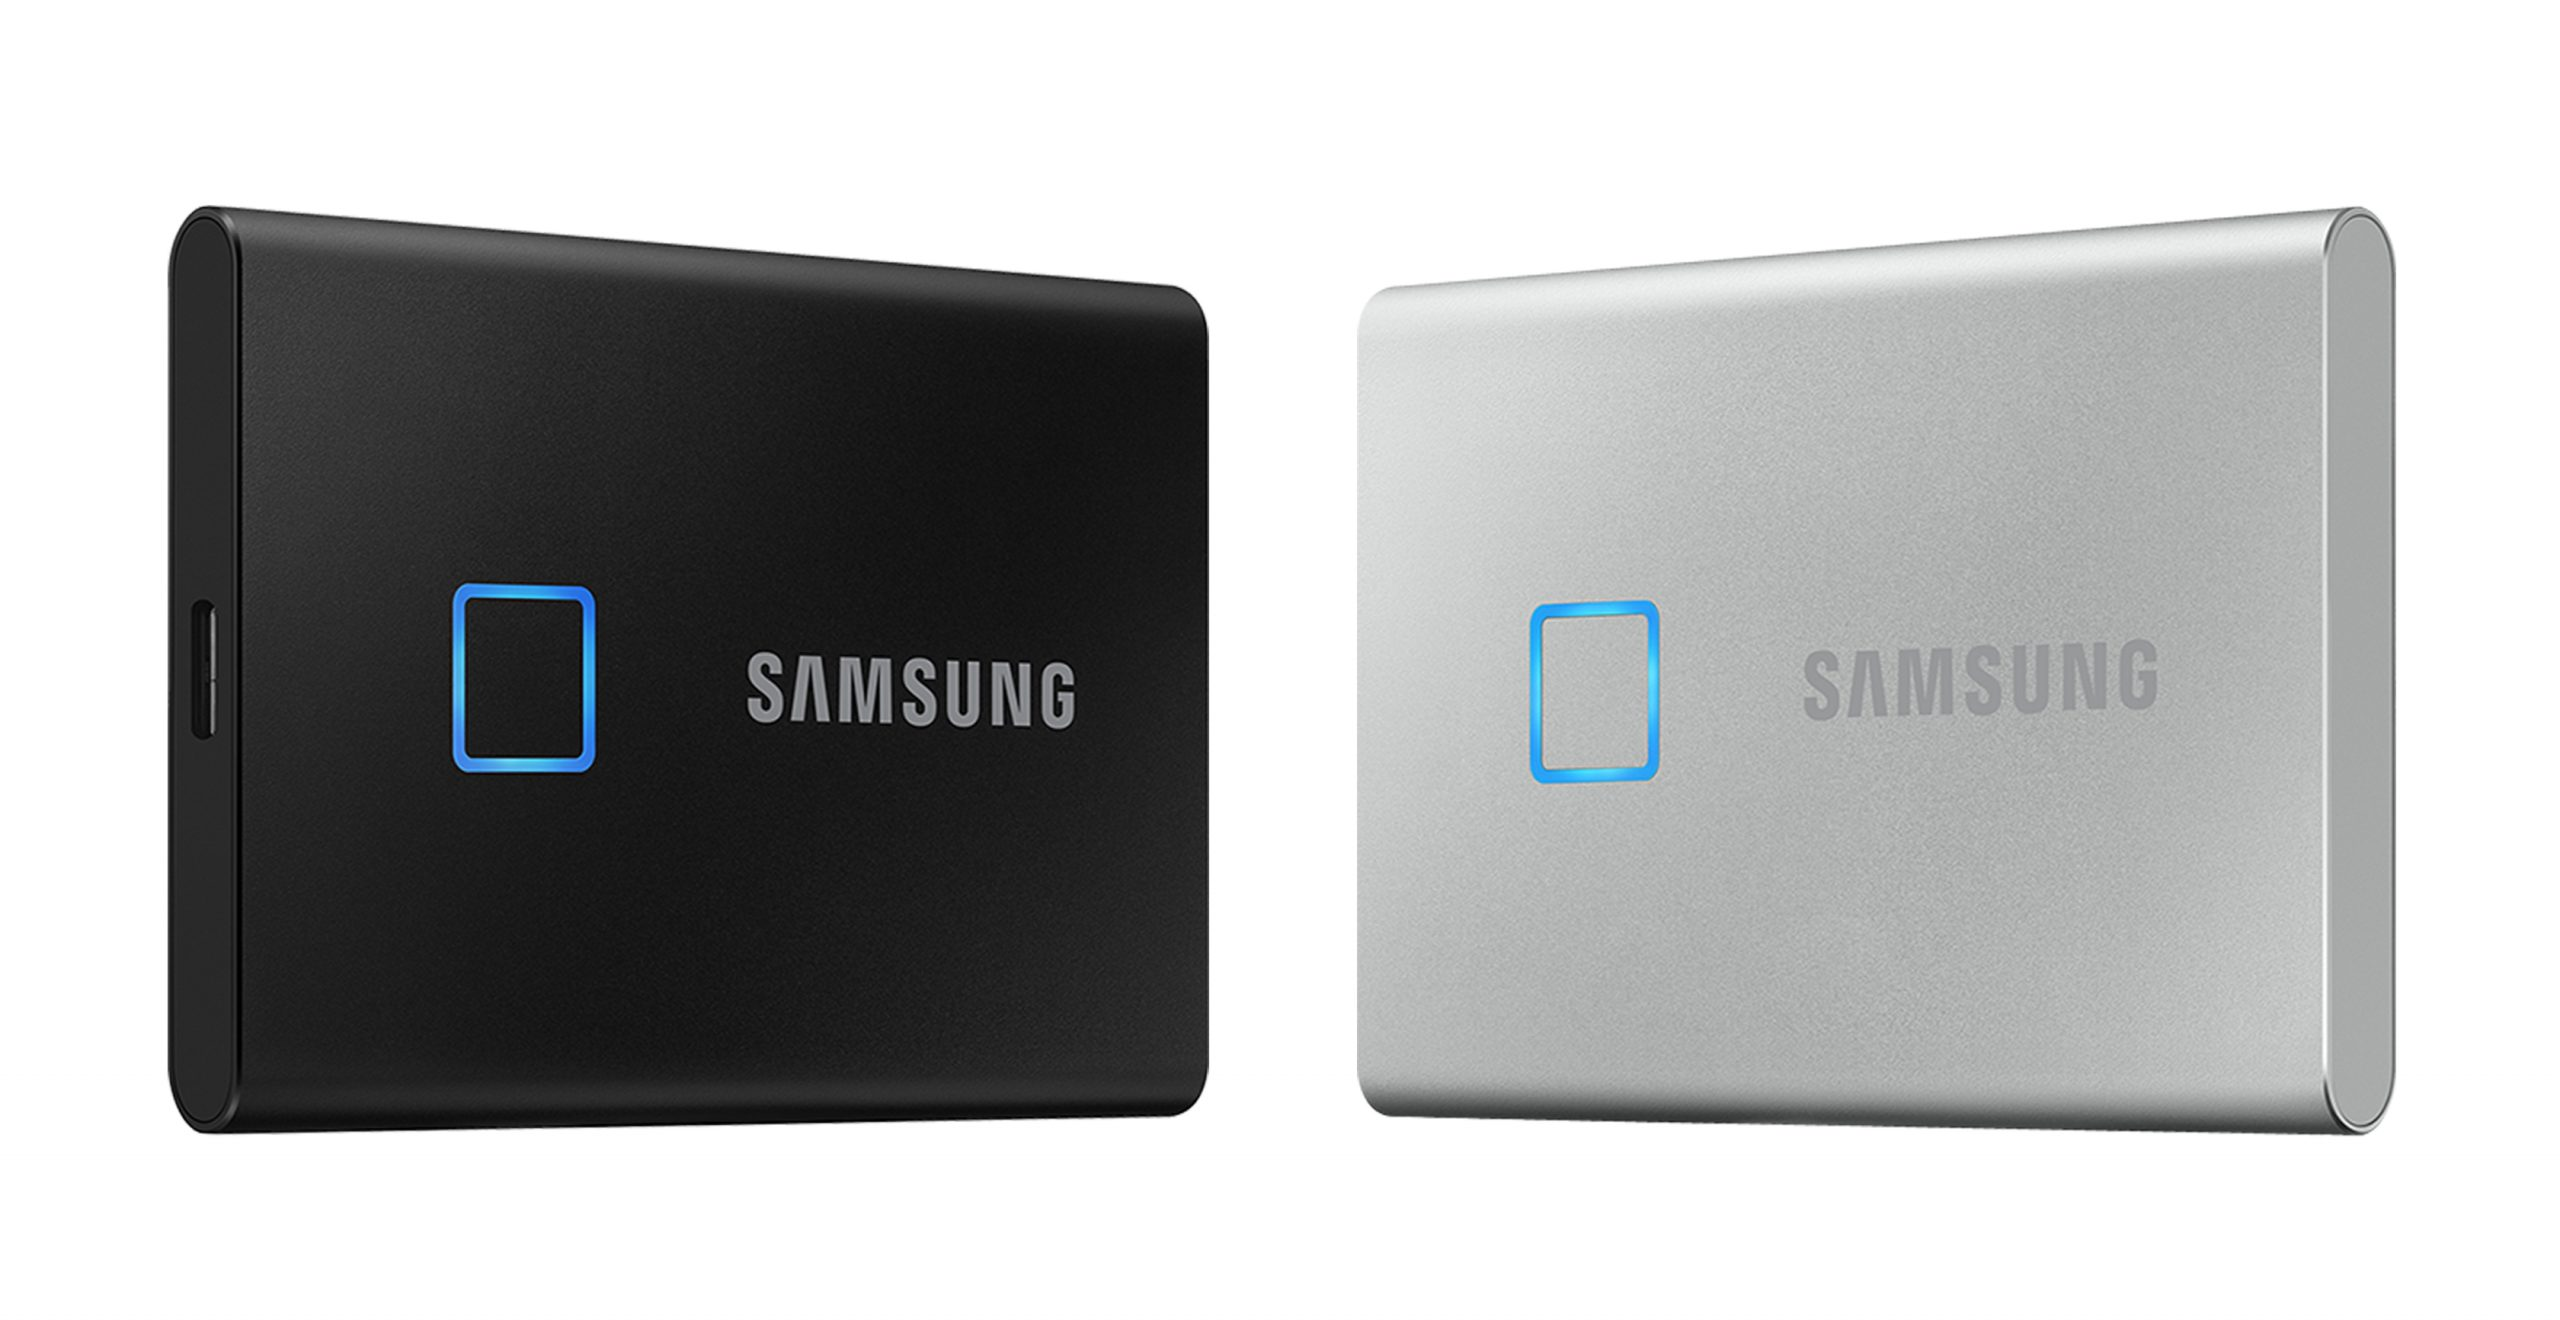 Samsung SSD 7 Touch